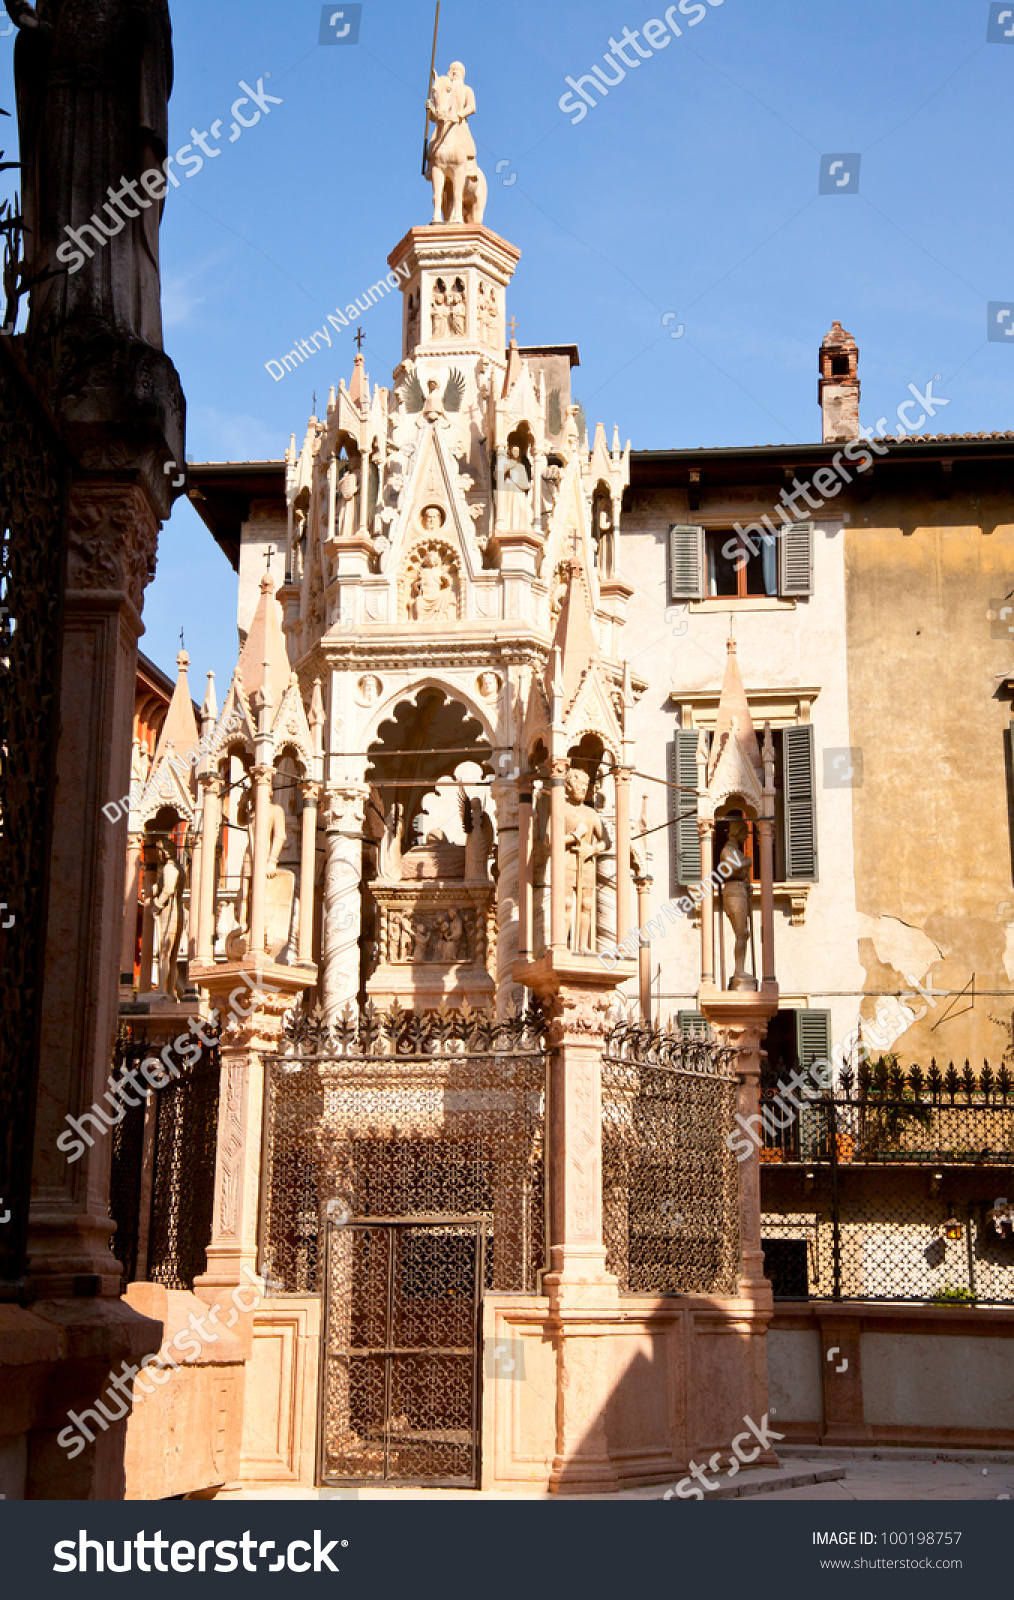 Famous gothic funerary monument Scaliger Tombs Arche scaligere in Verona Italy